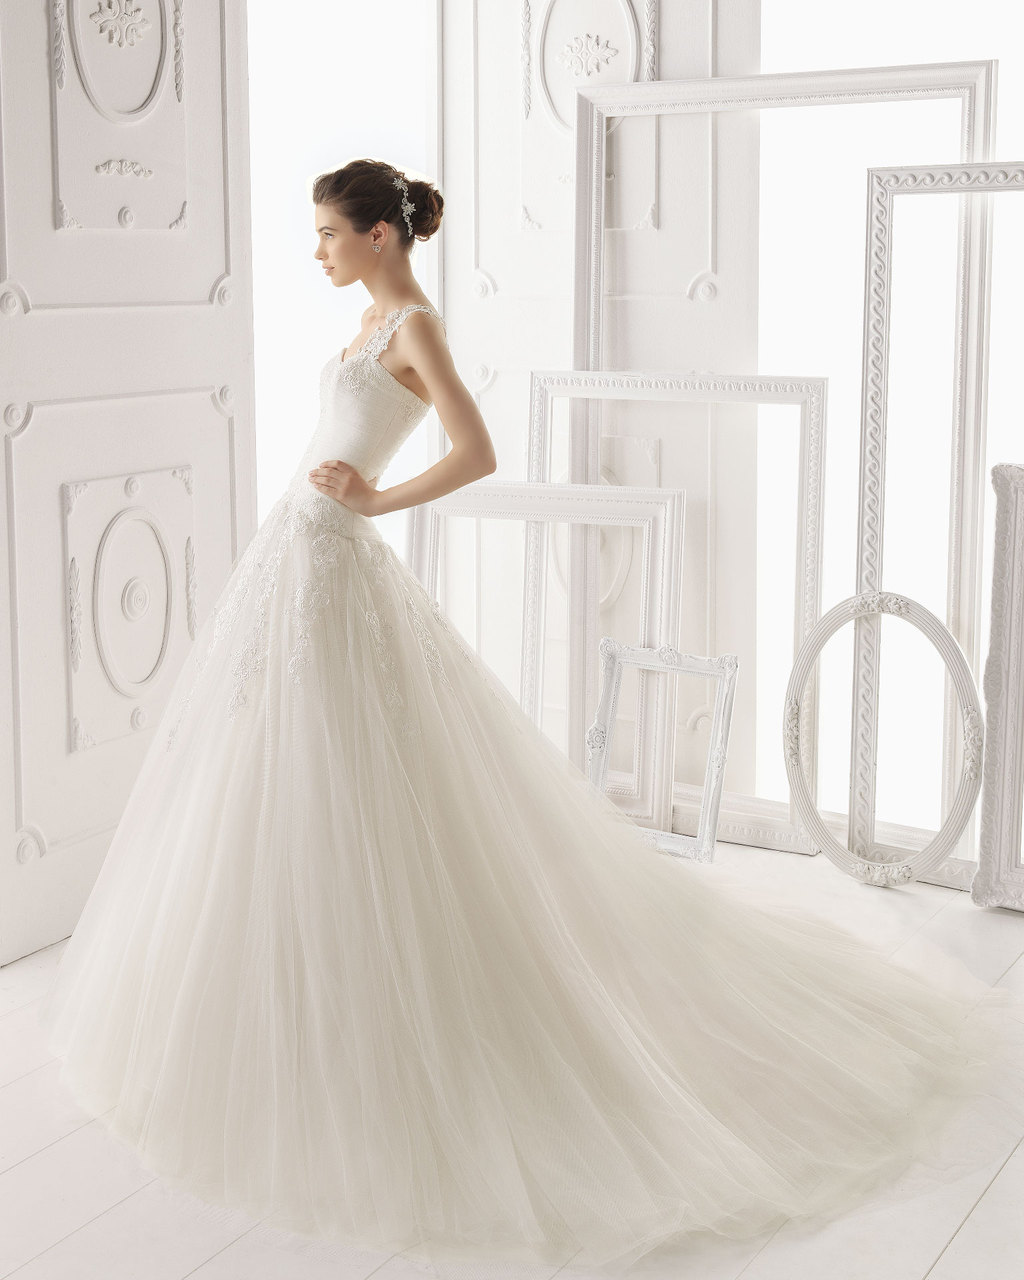 Aire-barcelona-wedding-dress-2014-bridal-olmo.full